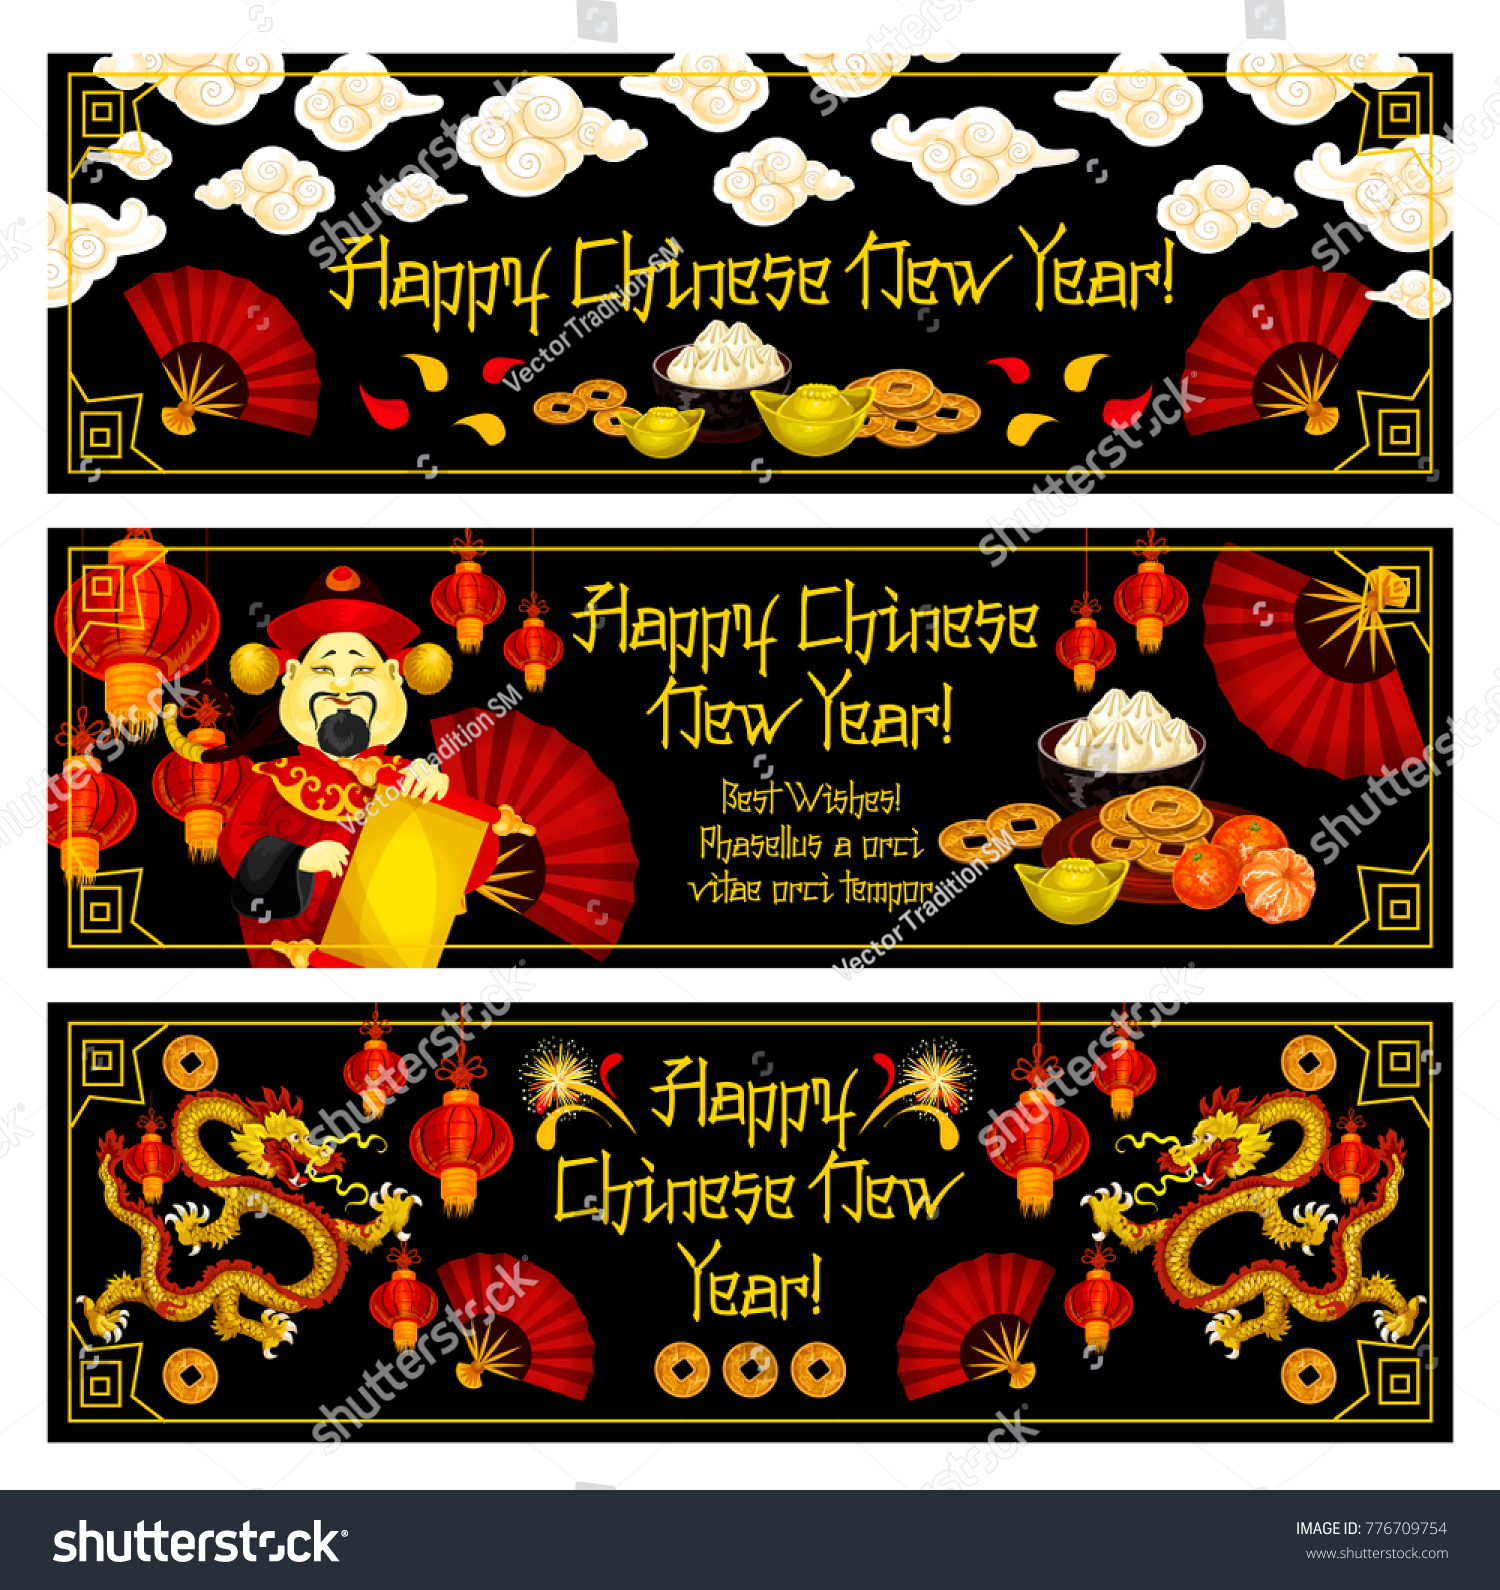 Happy chinese new year greeting banners stock vector 776709754 happy chinese new year greeting banners for traditional lunar holiday celebration vector chinese symbols and m4hsunfo Image collections